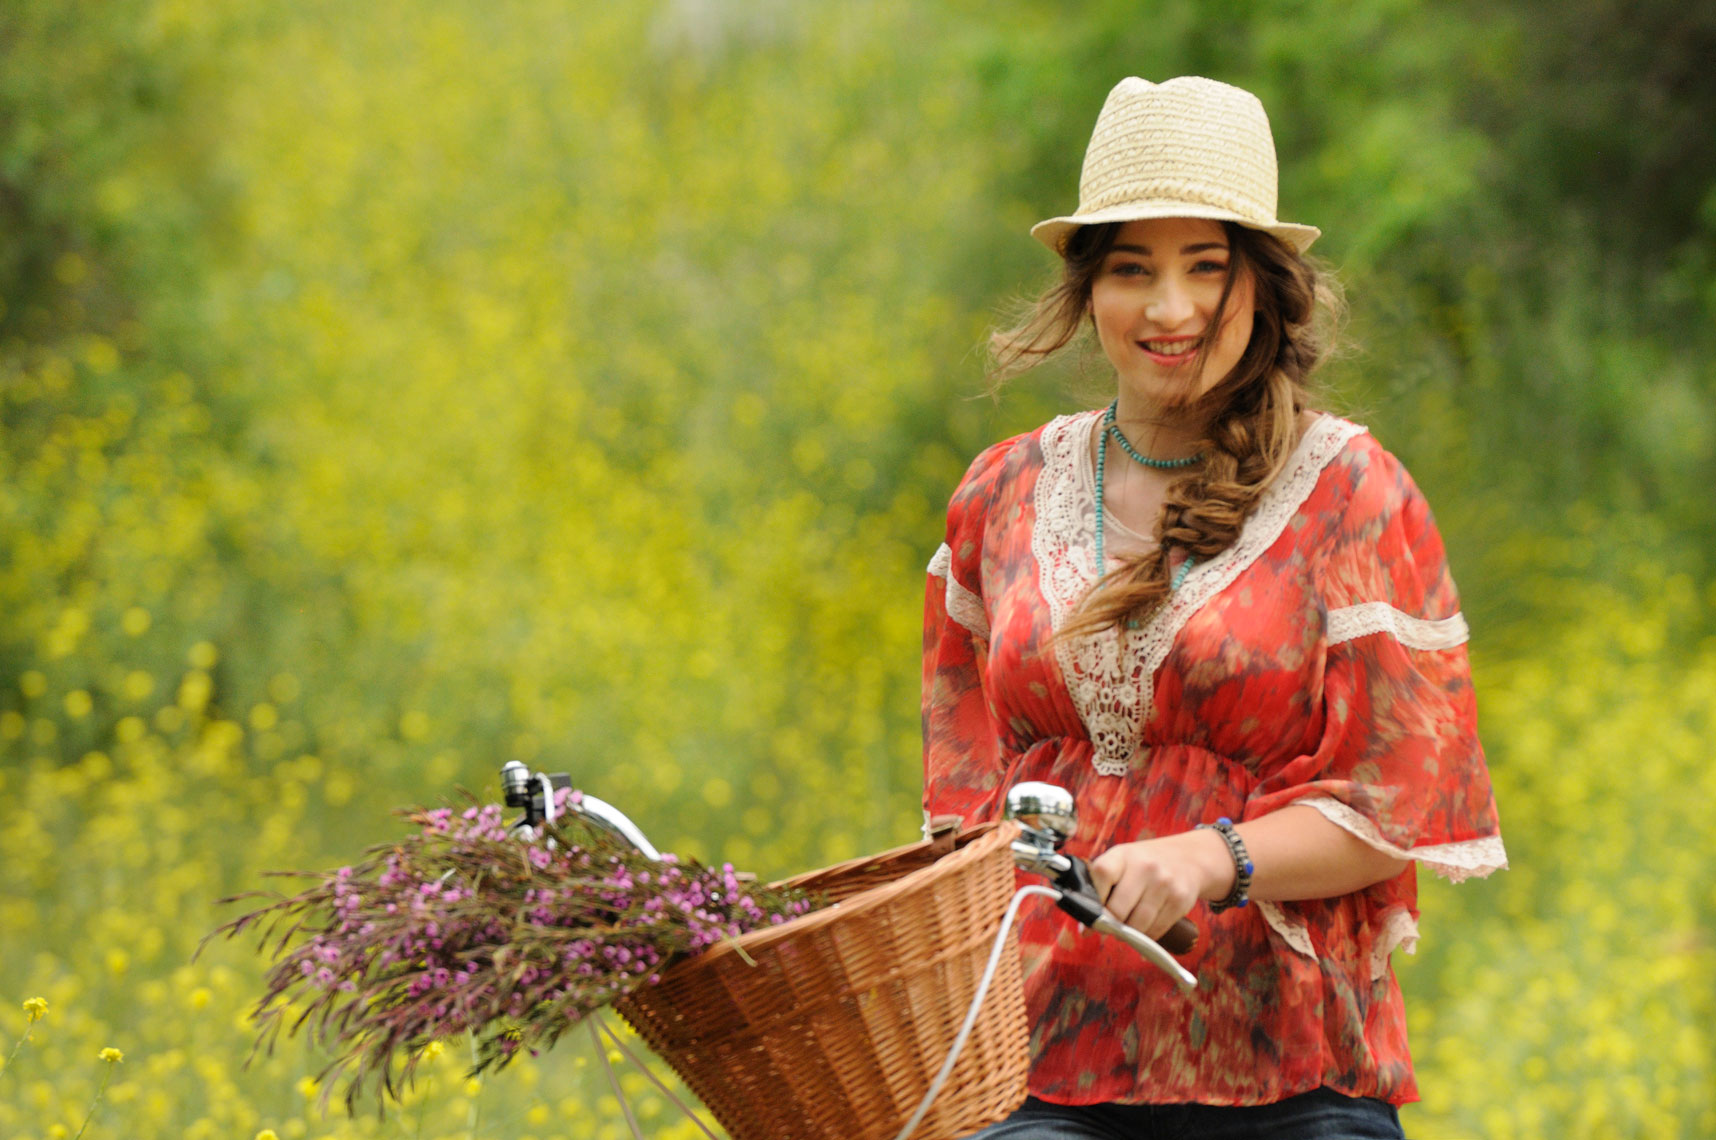 Lifestyle-portrait-of-young-woman-on-a-bike-with-basket-of-flowers